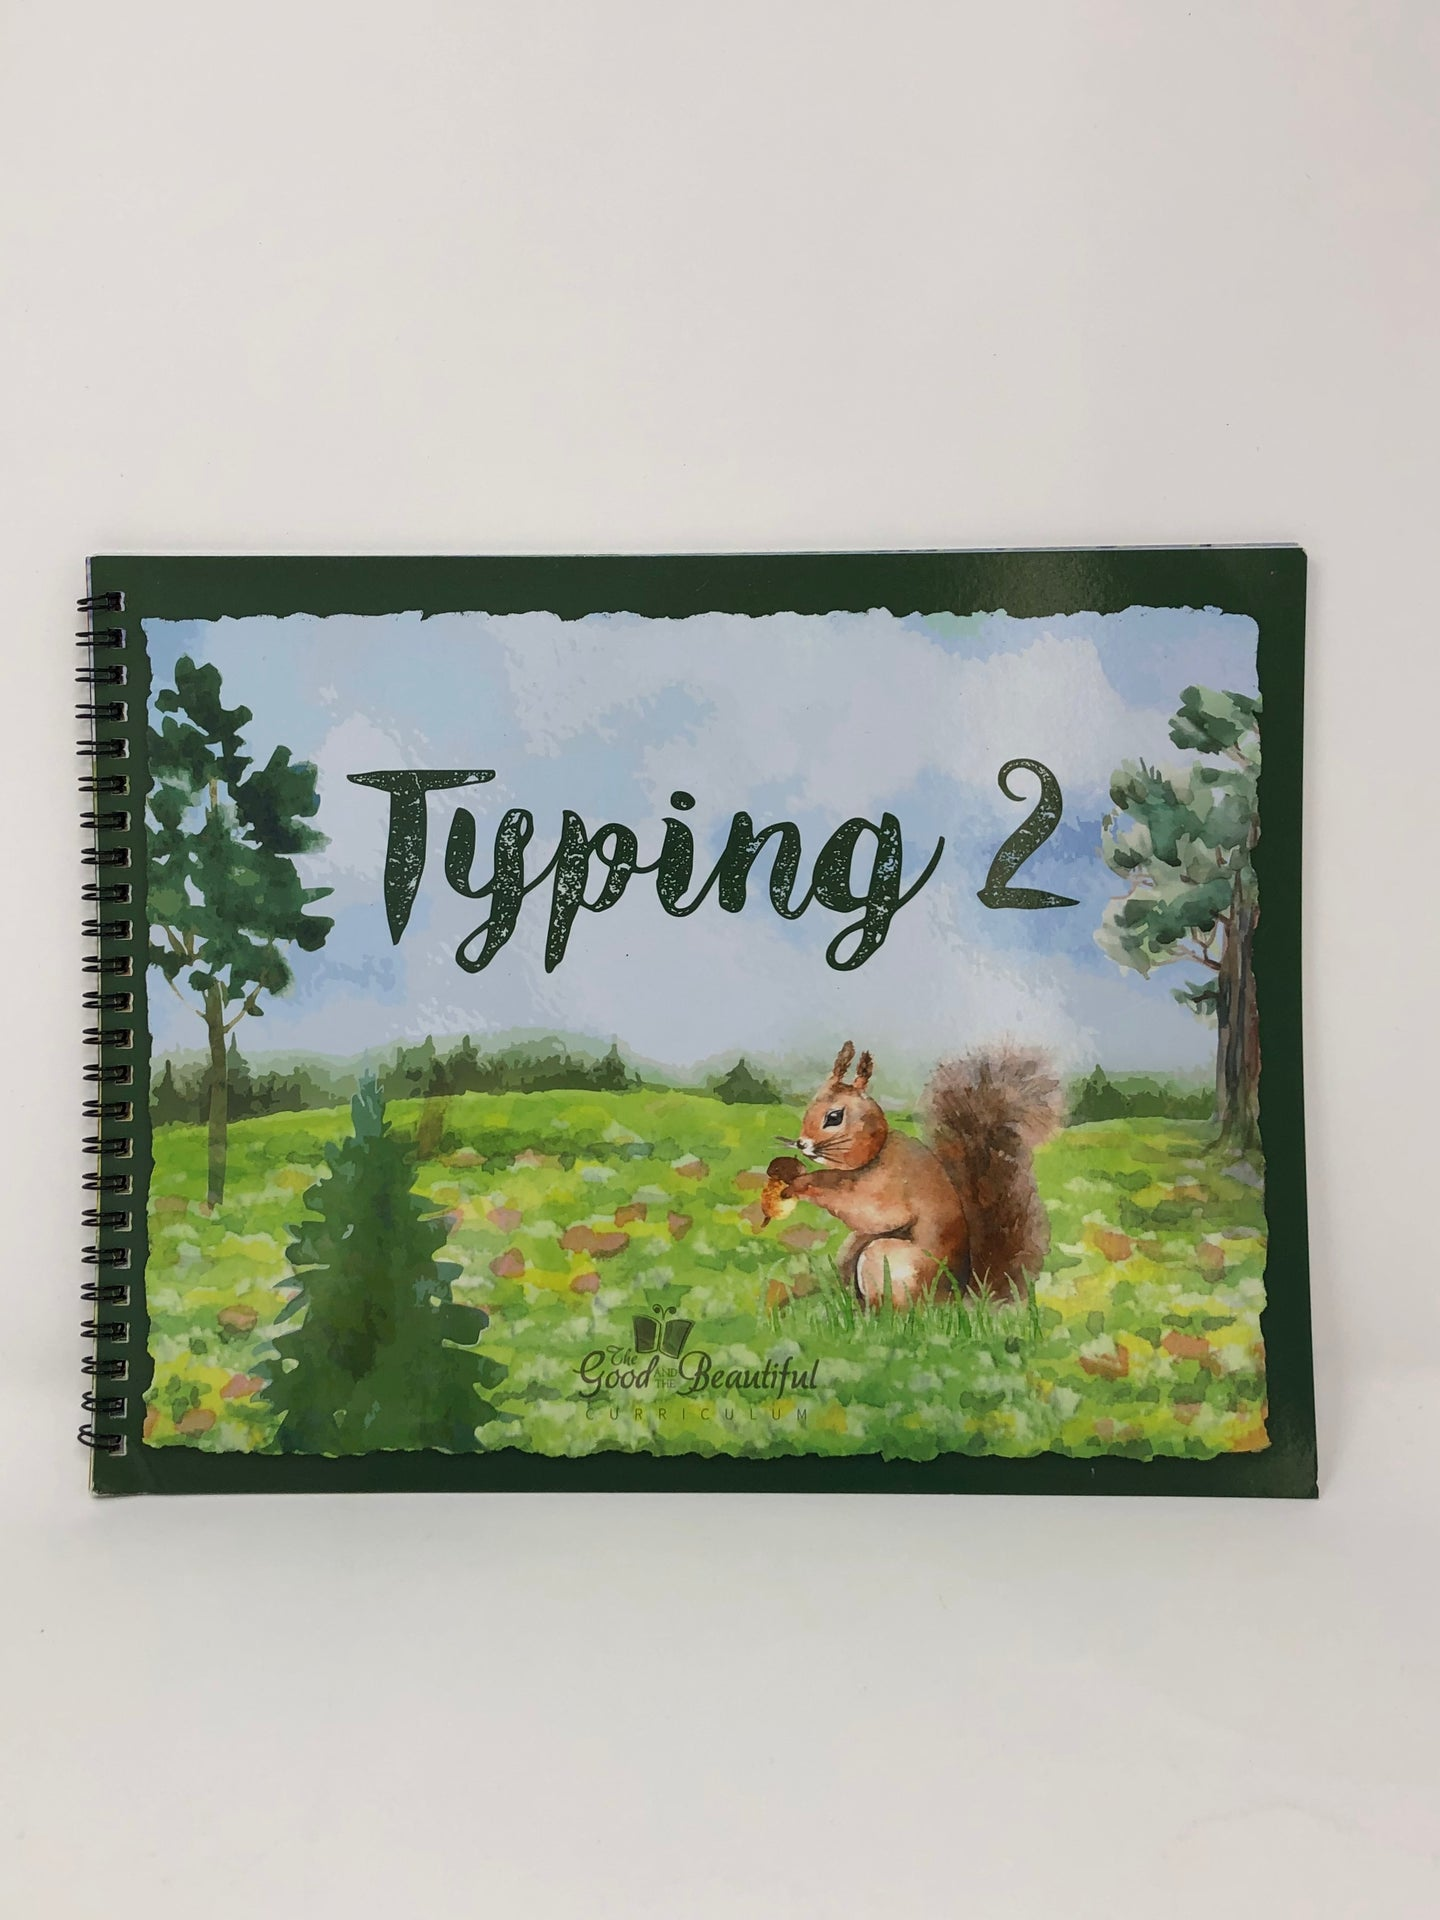 Typing 2-The Good and the Beautiful (New) - Little Green Schoolhouse Books